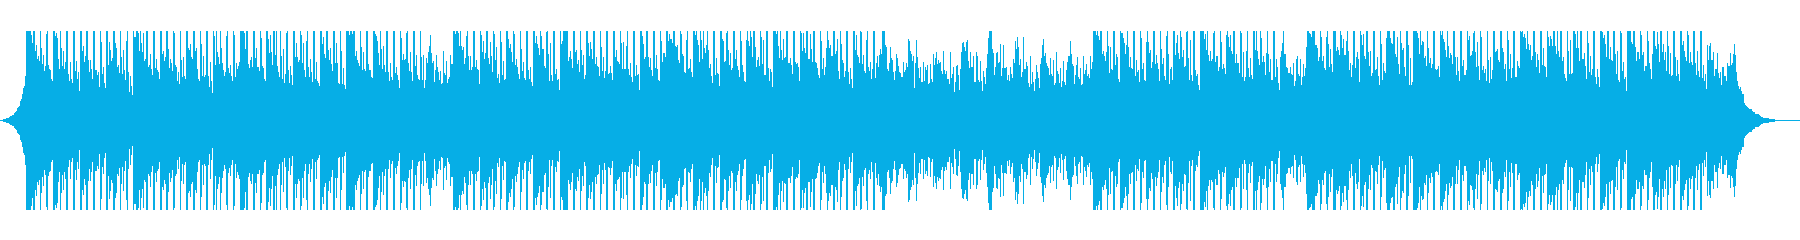 Medical Science's reproduced waveform